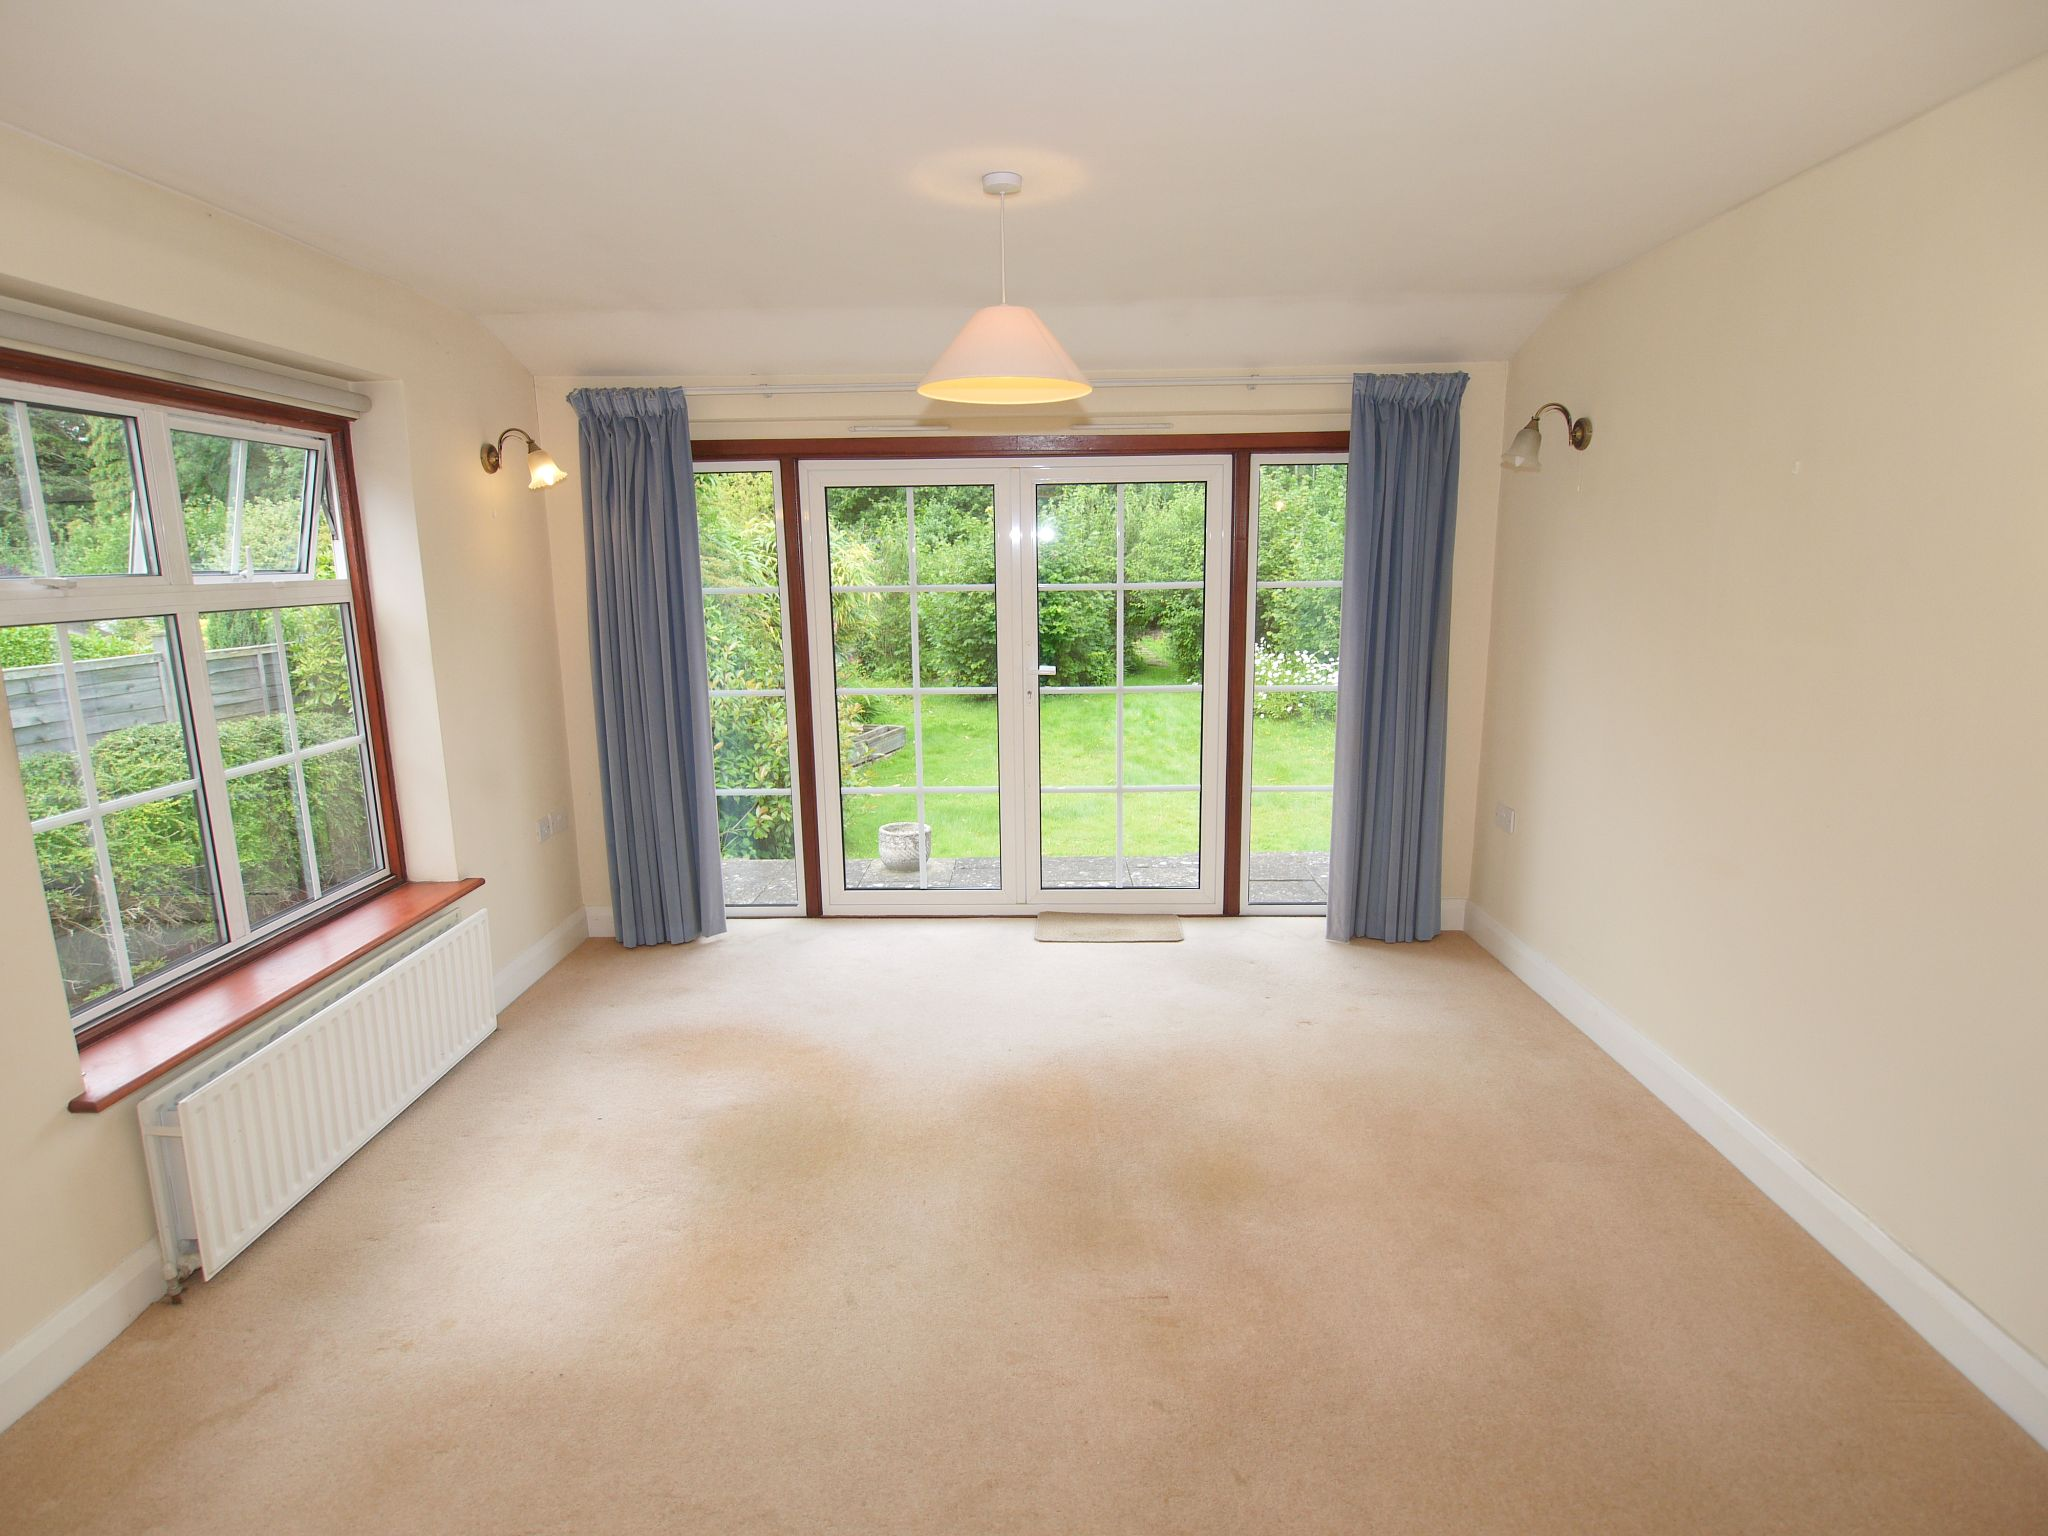 3 bedroom detached house Sale Agreed in Sevenoaks - Photograph 4